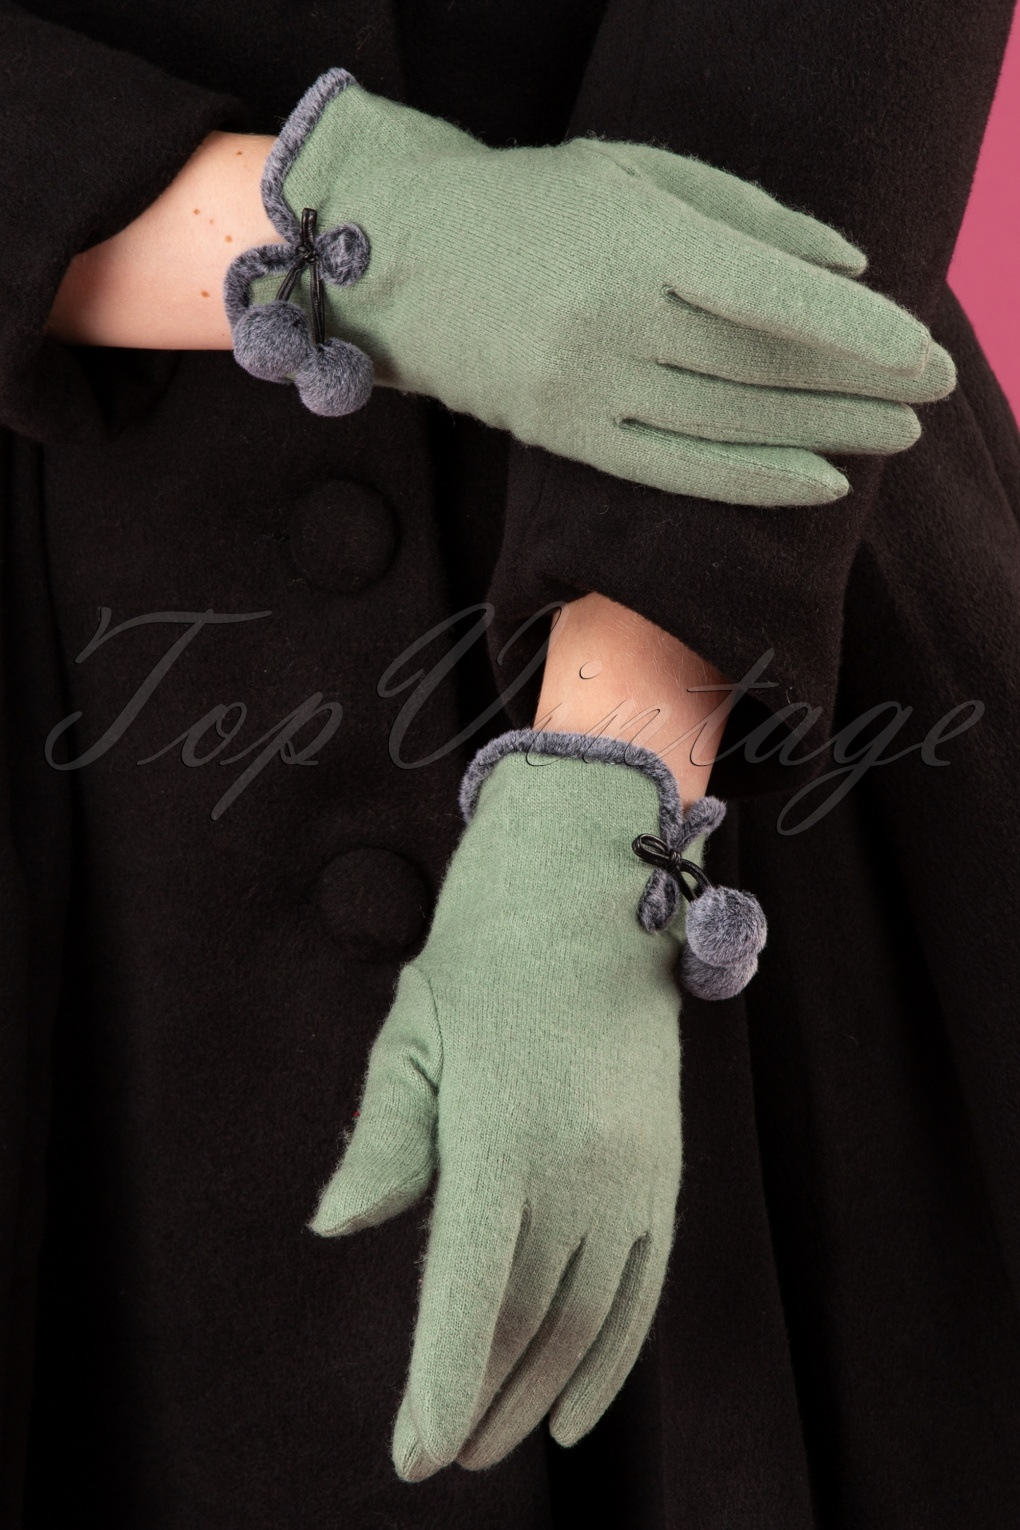 Vintage Style Gloves- Long, Wrist, Evening, Day, Leather, Lace 40s Betty Pom Pom Wool Gloves in Pale Green £23.59 AT vintagedancer.com